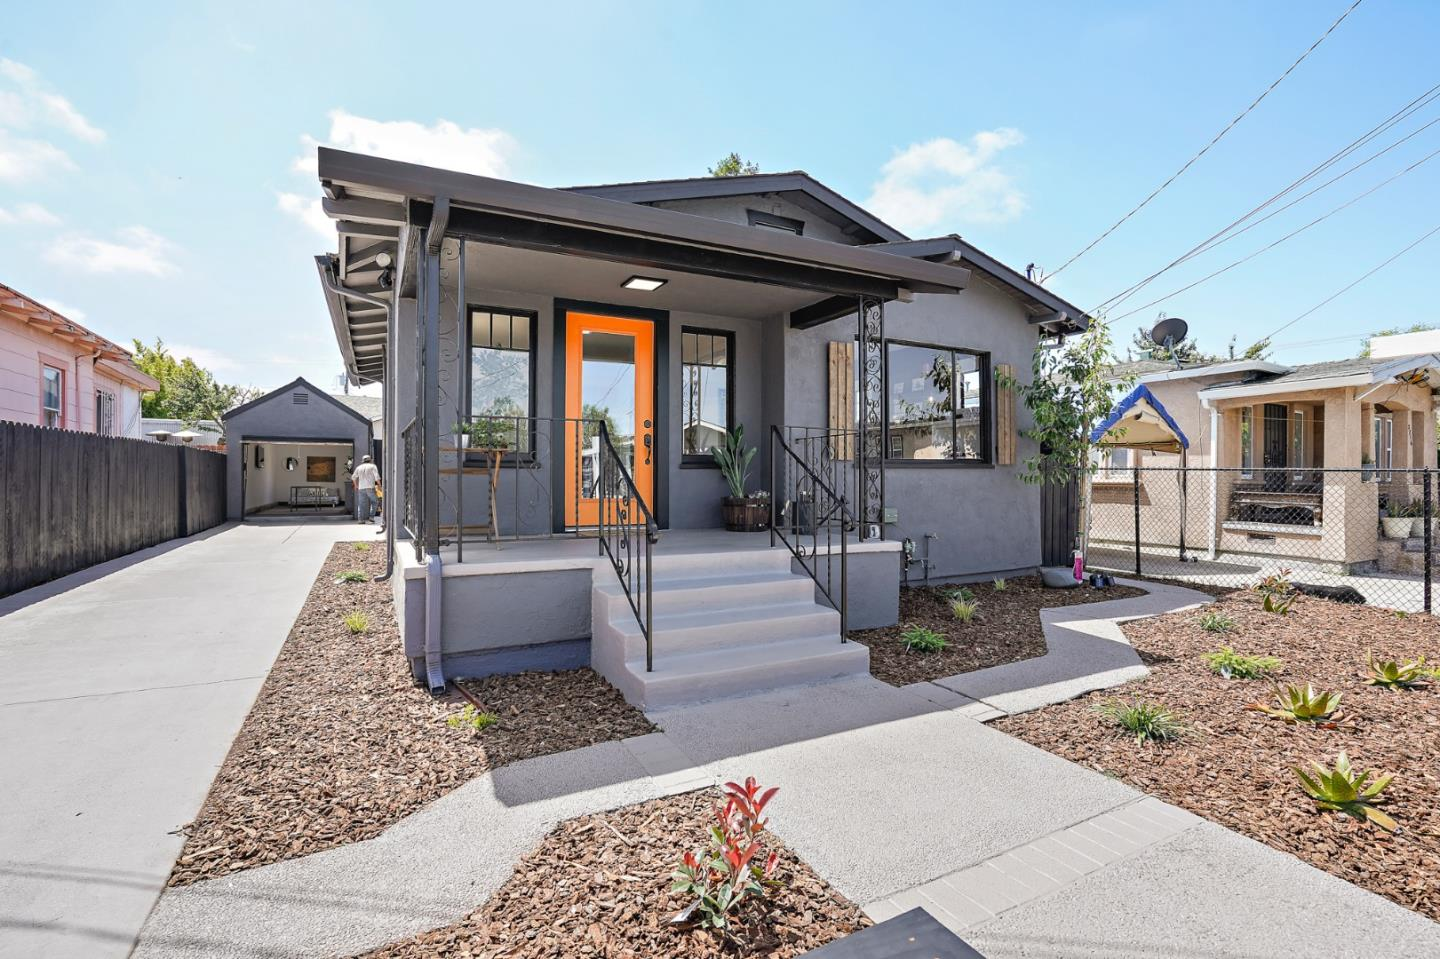 Image for 2720 78Th Avenue, <br>Oakland 94605